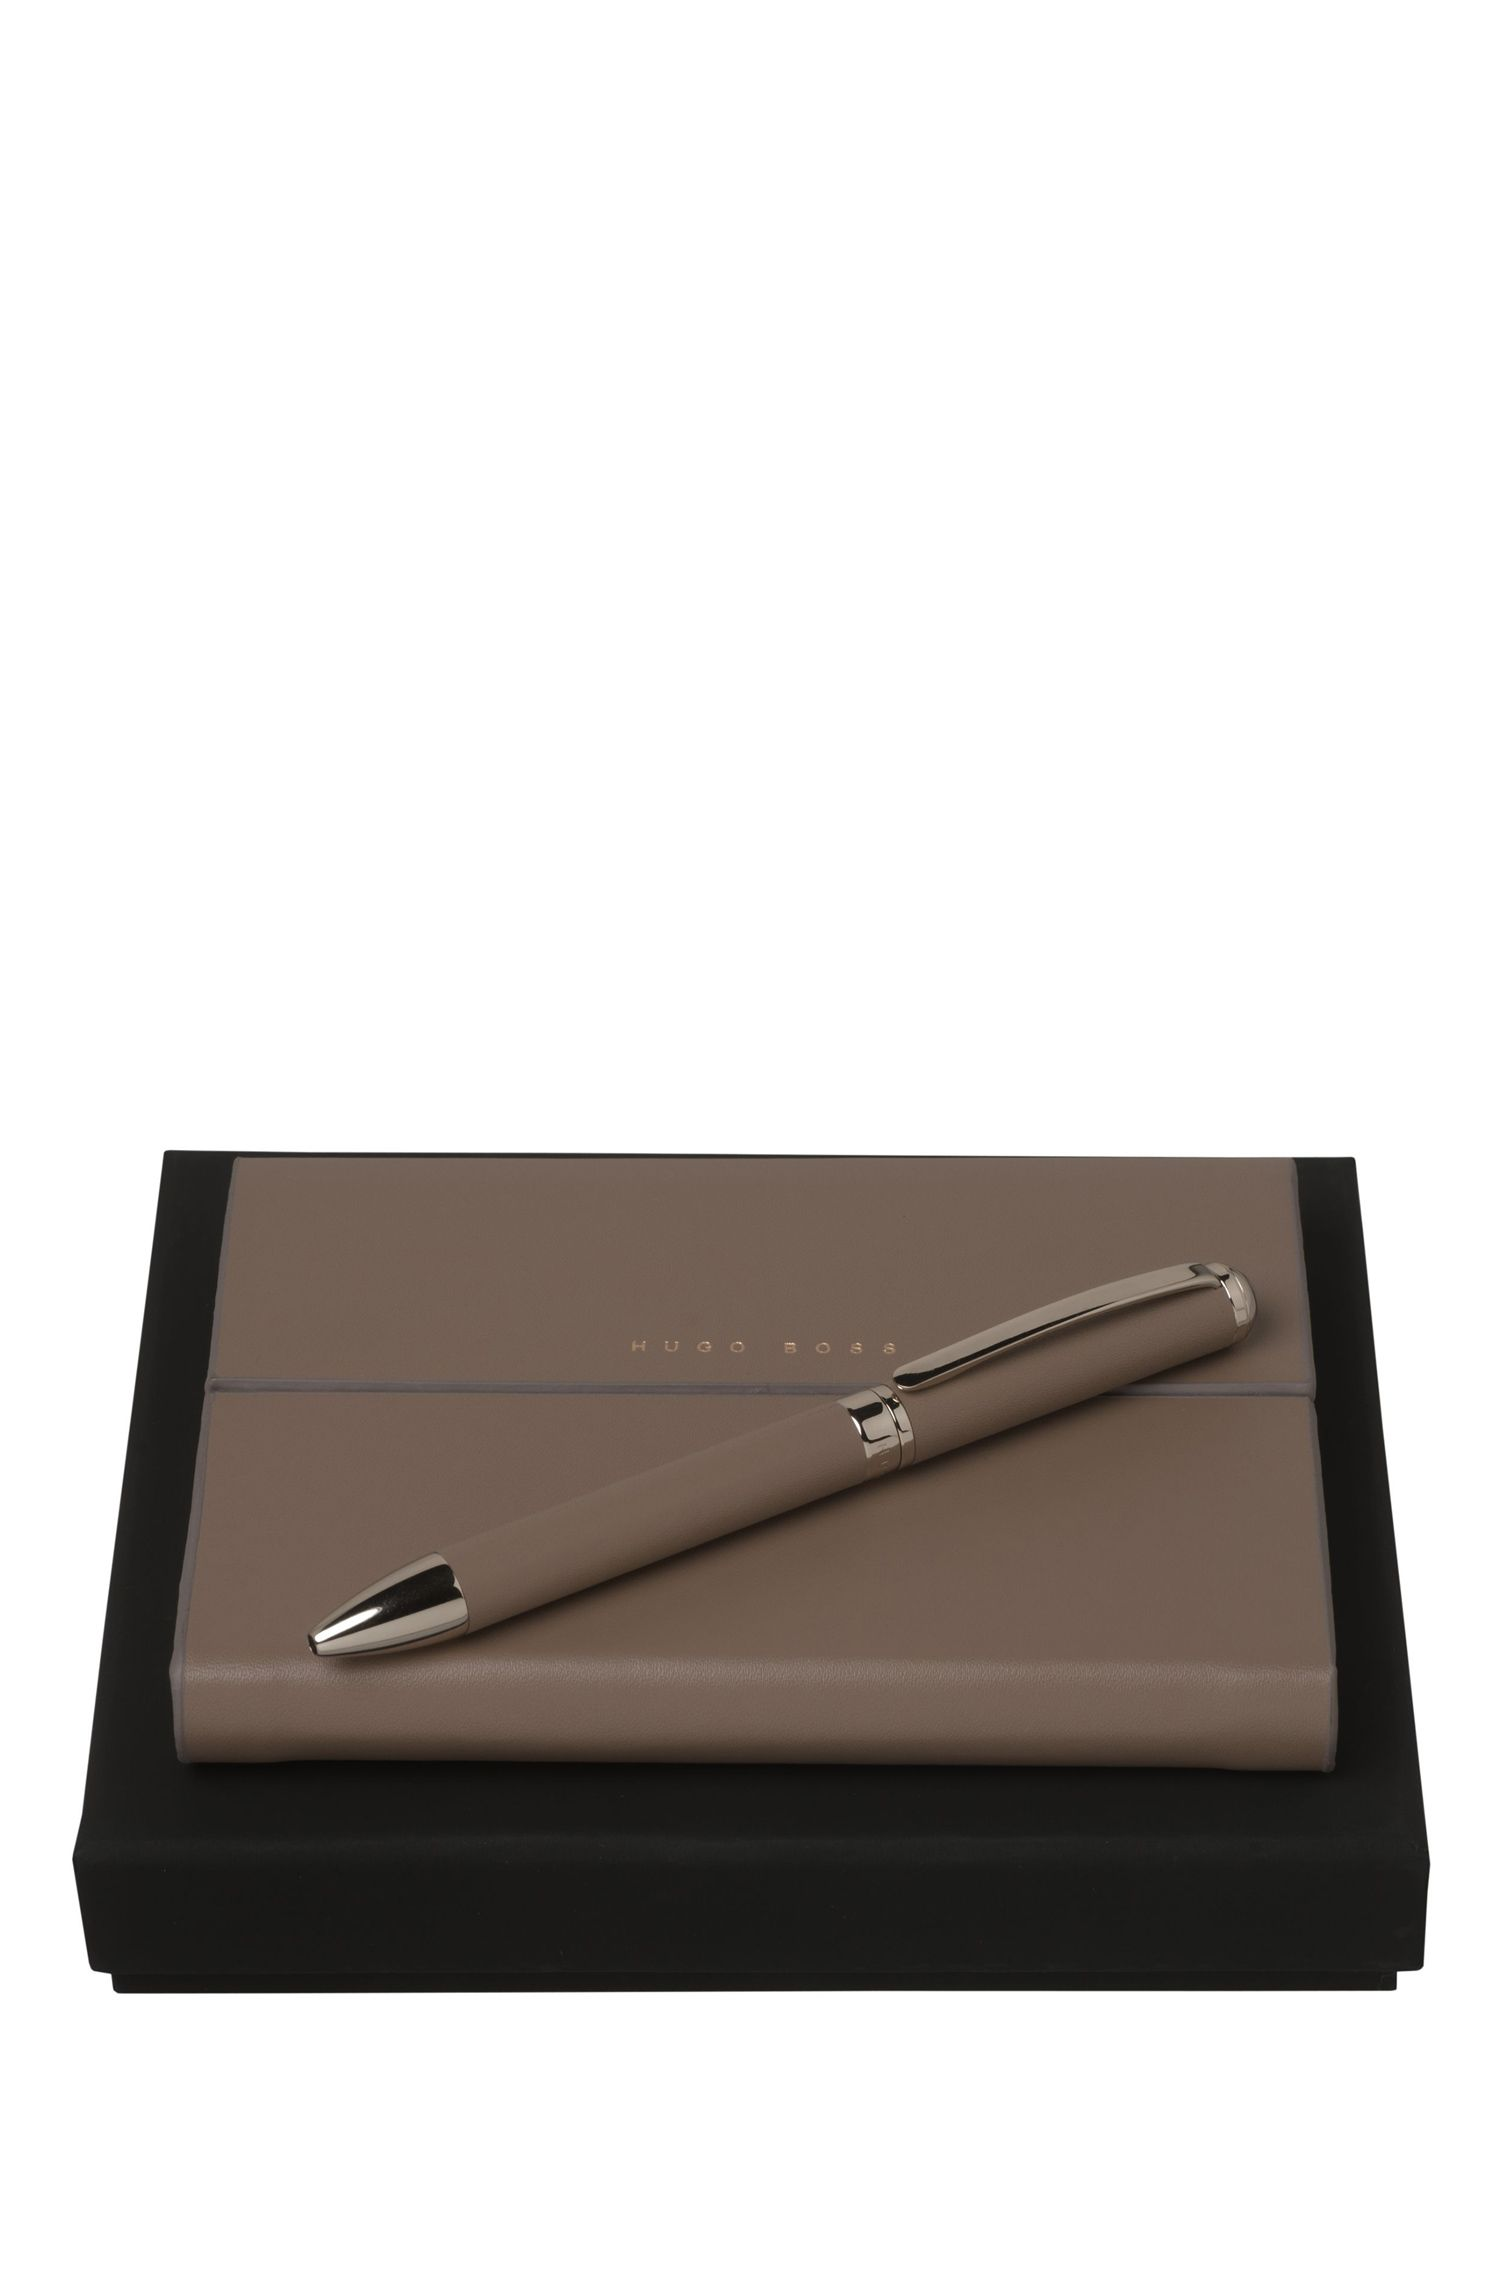 Verse Ballpoint Pen & Notebook Set | HPBM606Z